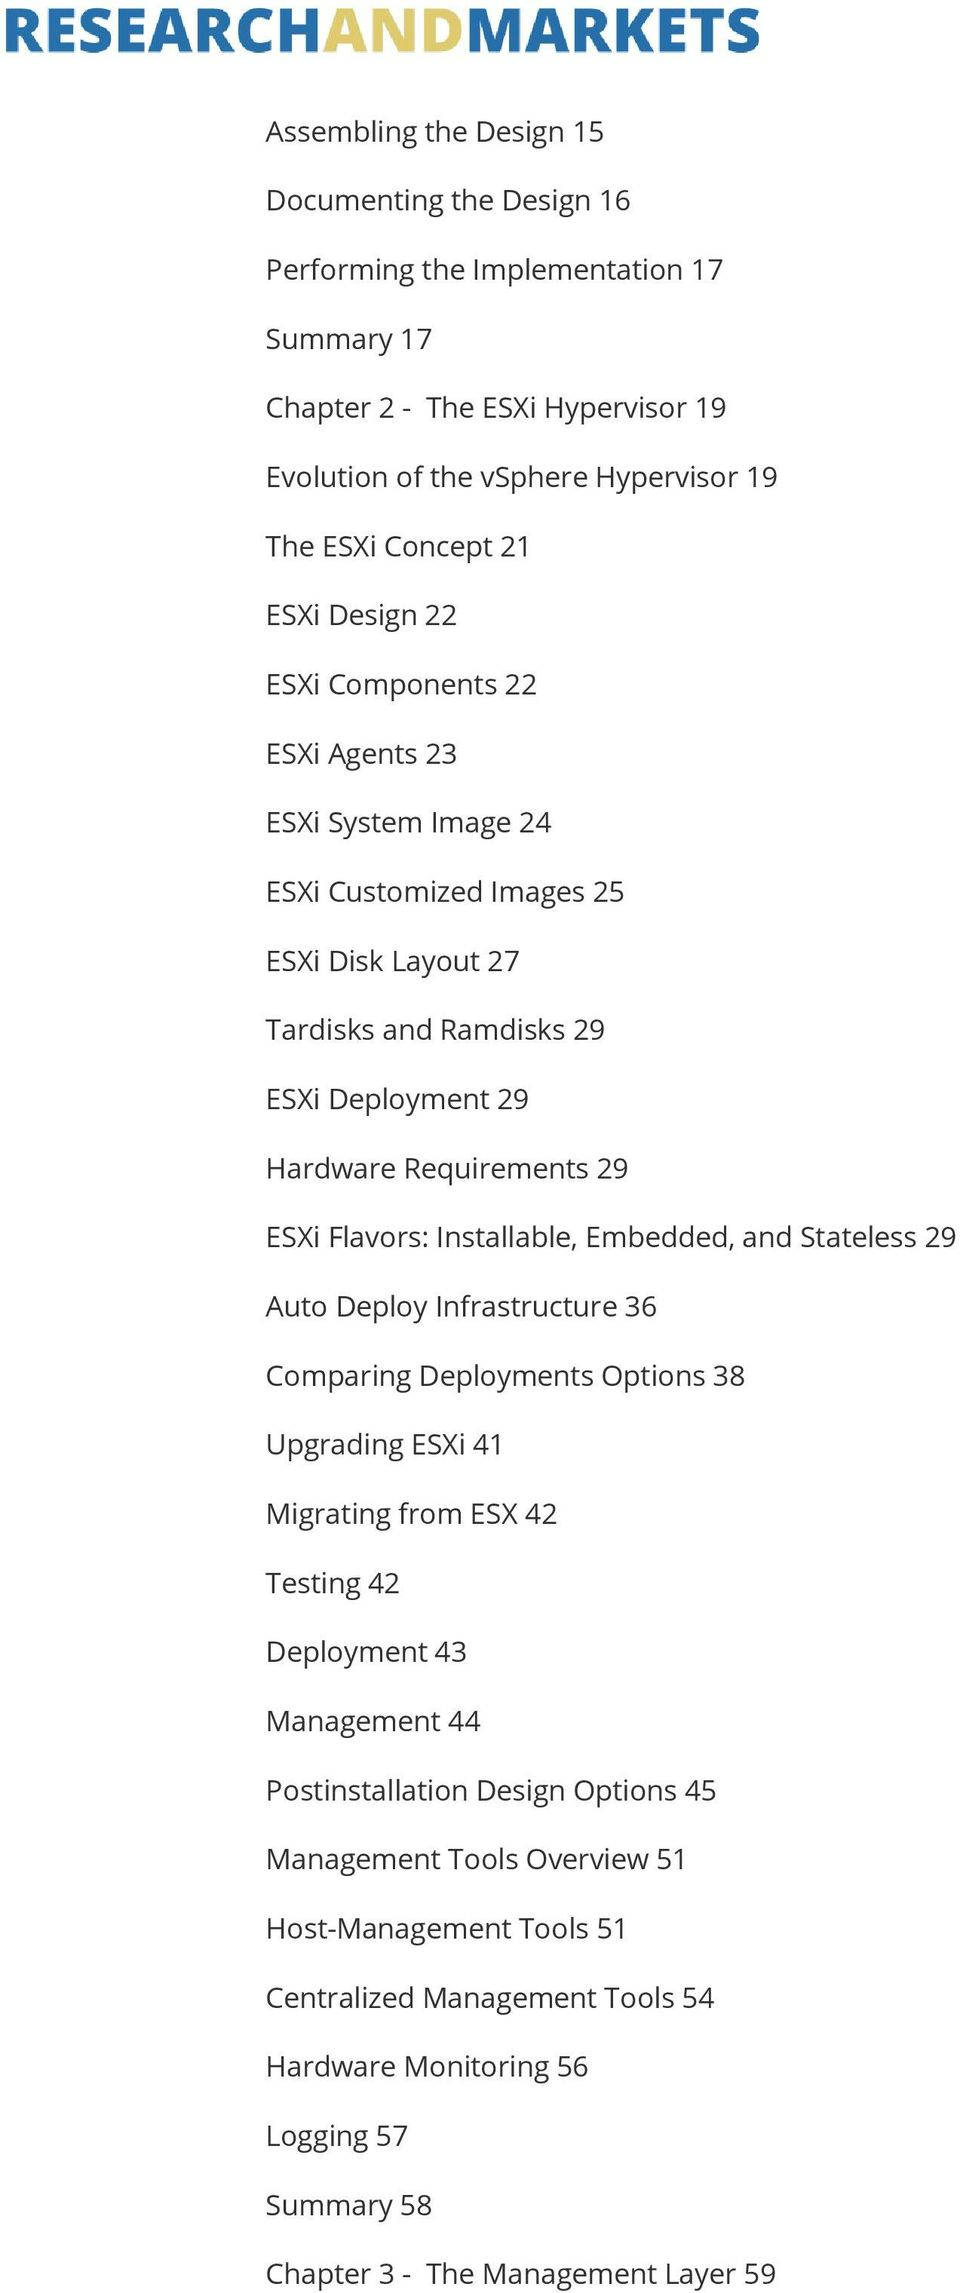 Flavors: Installable, Embedded, and Stateless 29 Auto Deploy Infrastructure 36 Comparing Deployments Options 38 Upgrading ESXi 41 Migrating from ESX 42 Testing 42 Deployment 43 Management 44